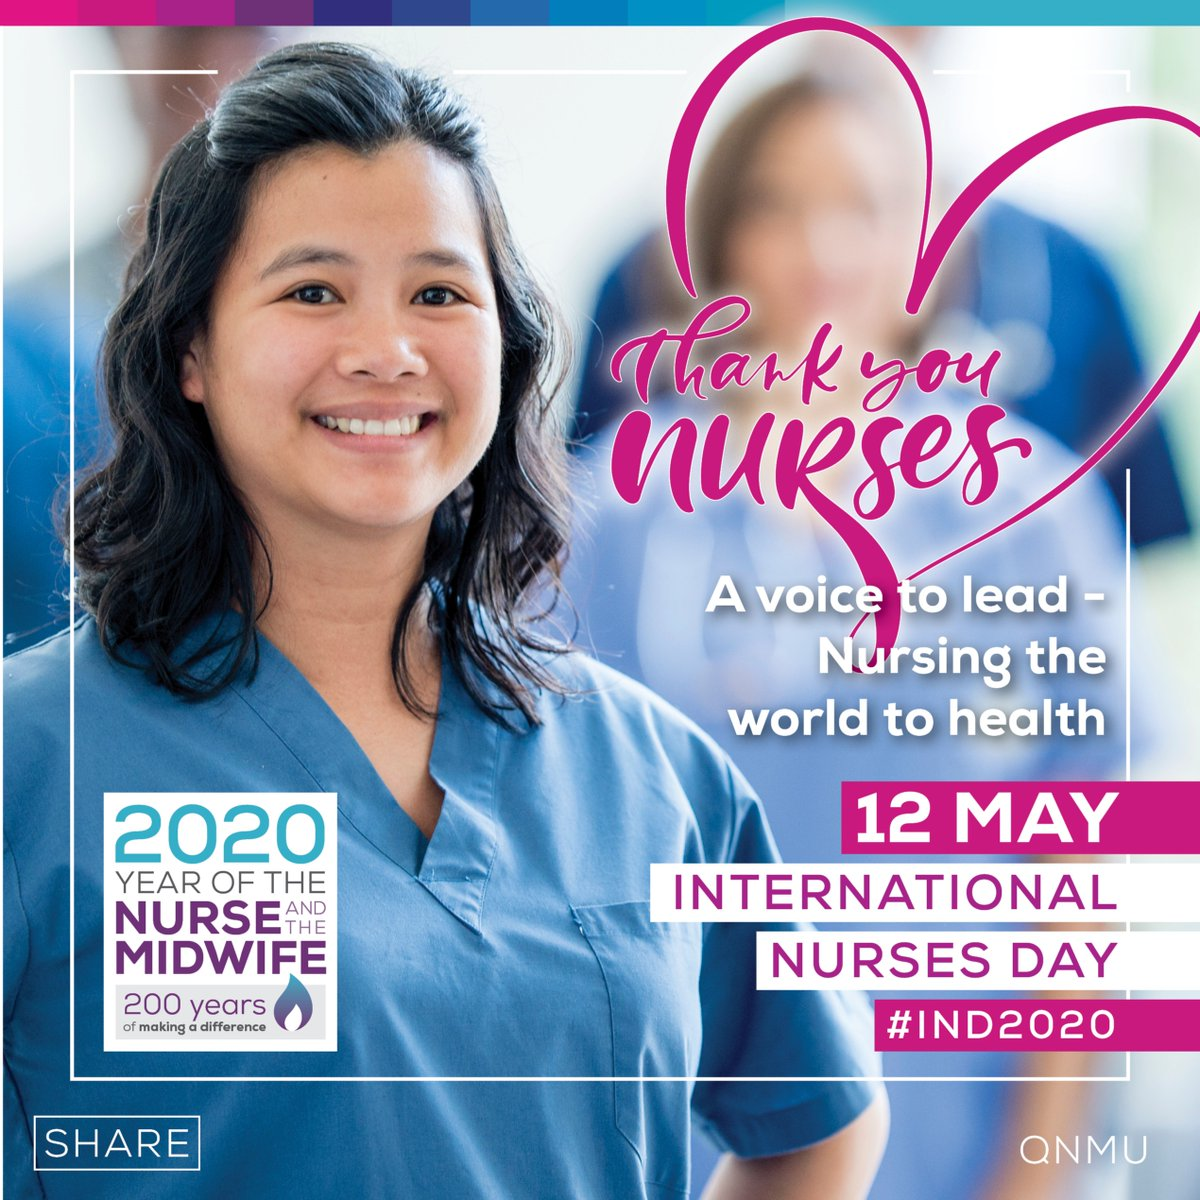 On International Nurses Day today, let's acknowledge the nurses in our hospitals, facilities and clinics who work long hours and public holidays to make sure our families and loved ones get the care they need. RT and say thanks. #IND2020